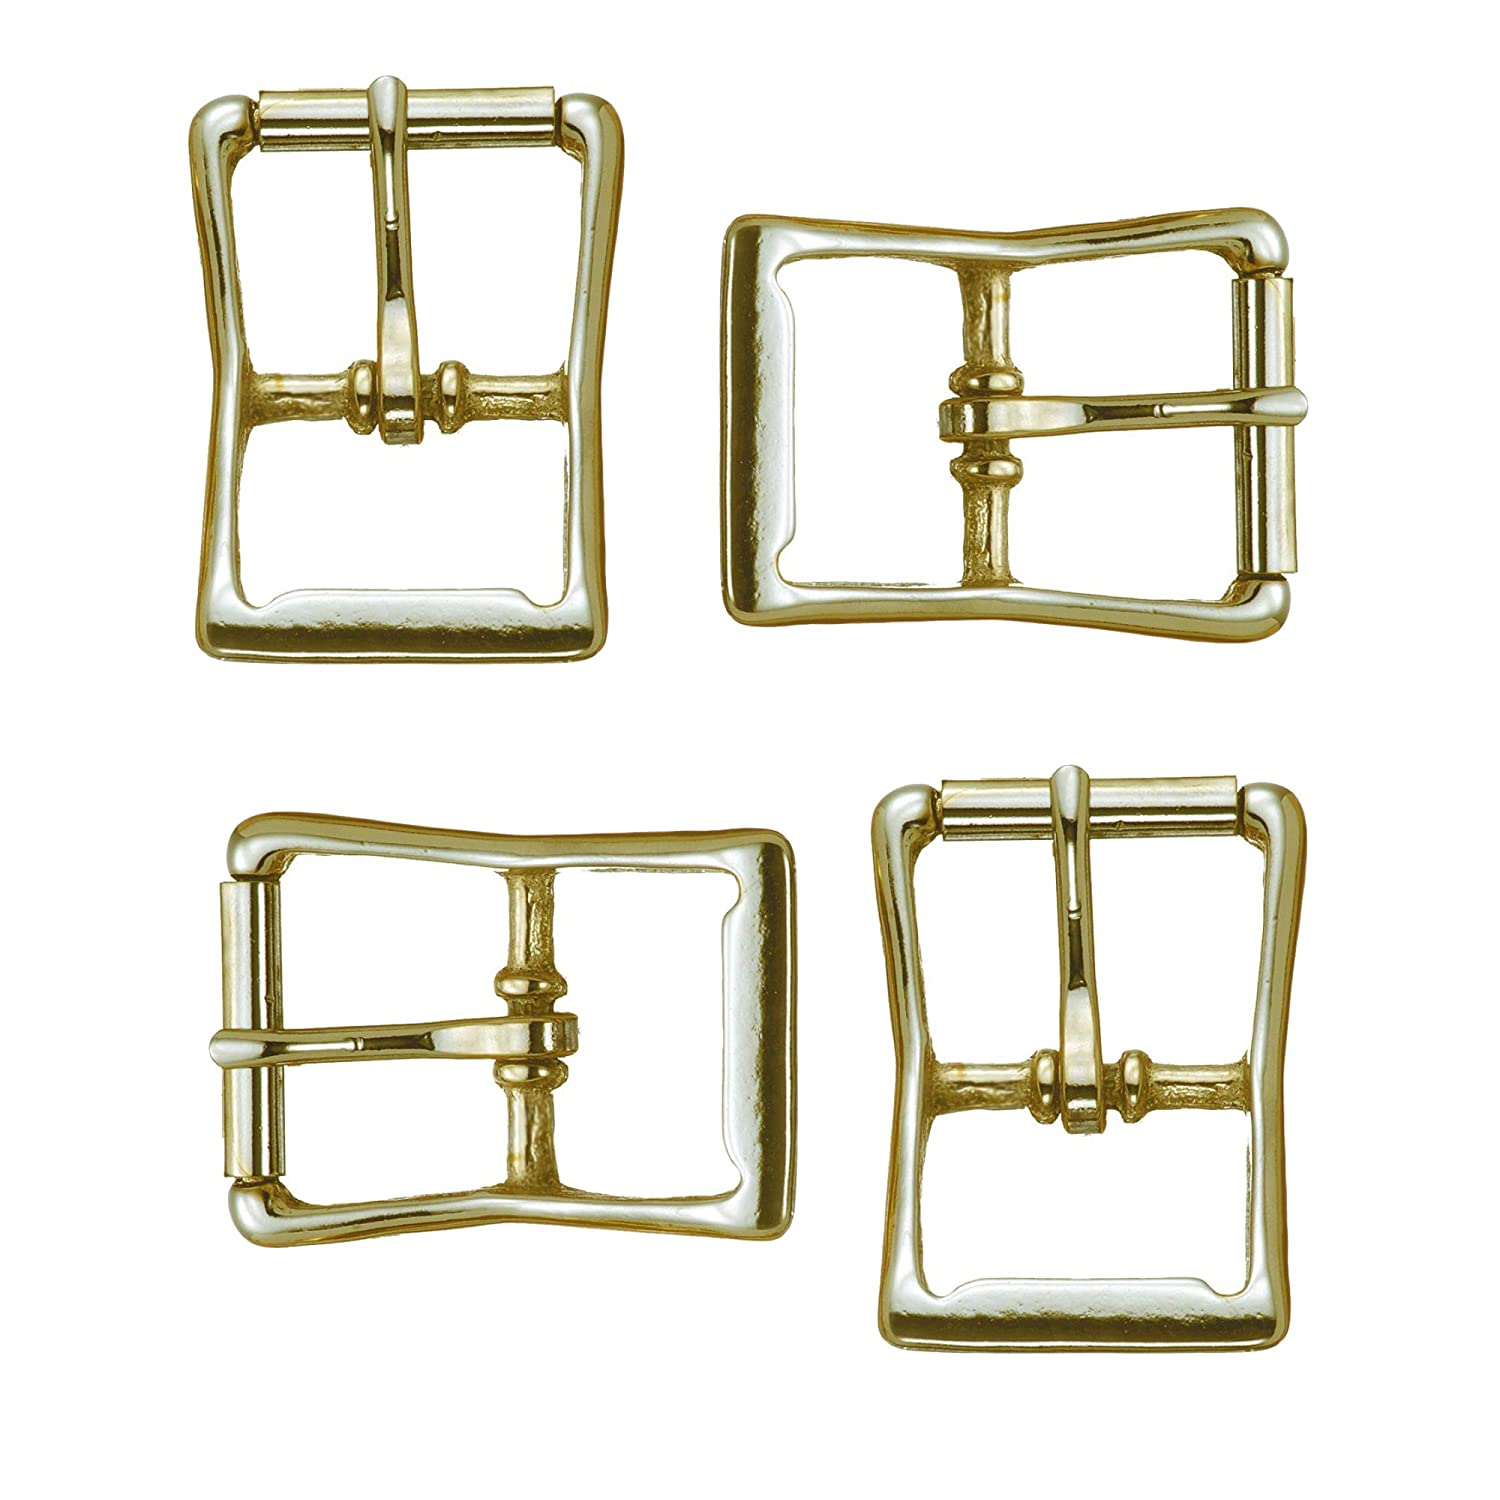 Multi-Pack of Solid Brass #150 Roller Buckles, Pack of 4 Buckles, Great for Marine, Outdoor, and Tack Applications, Will Not Rust (3/4